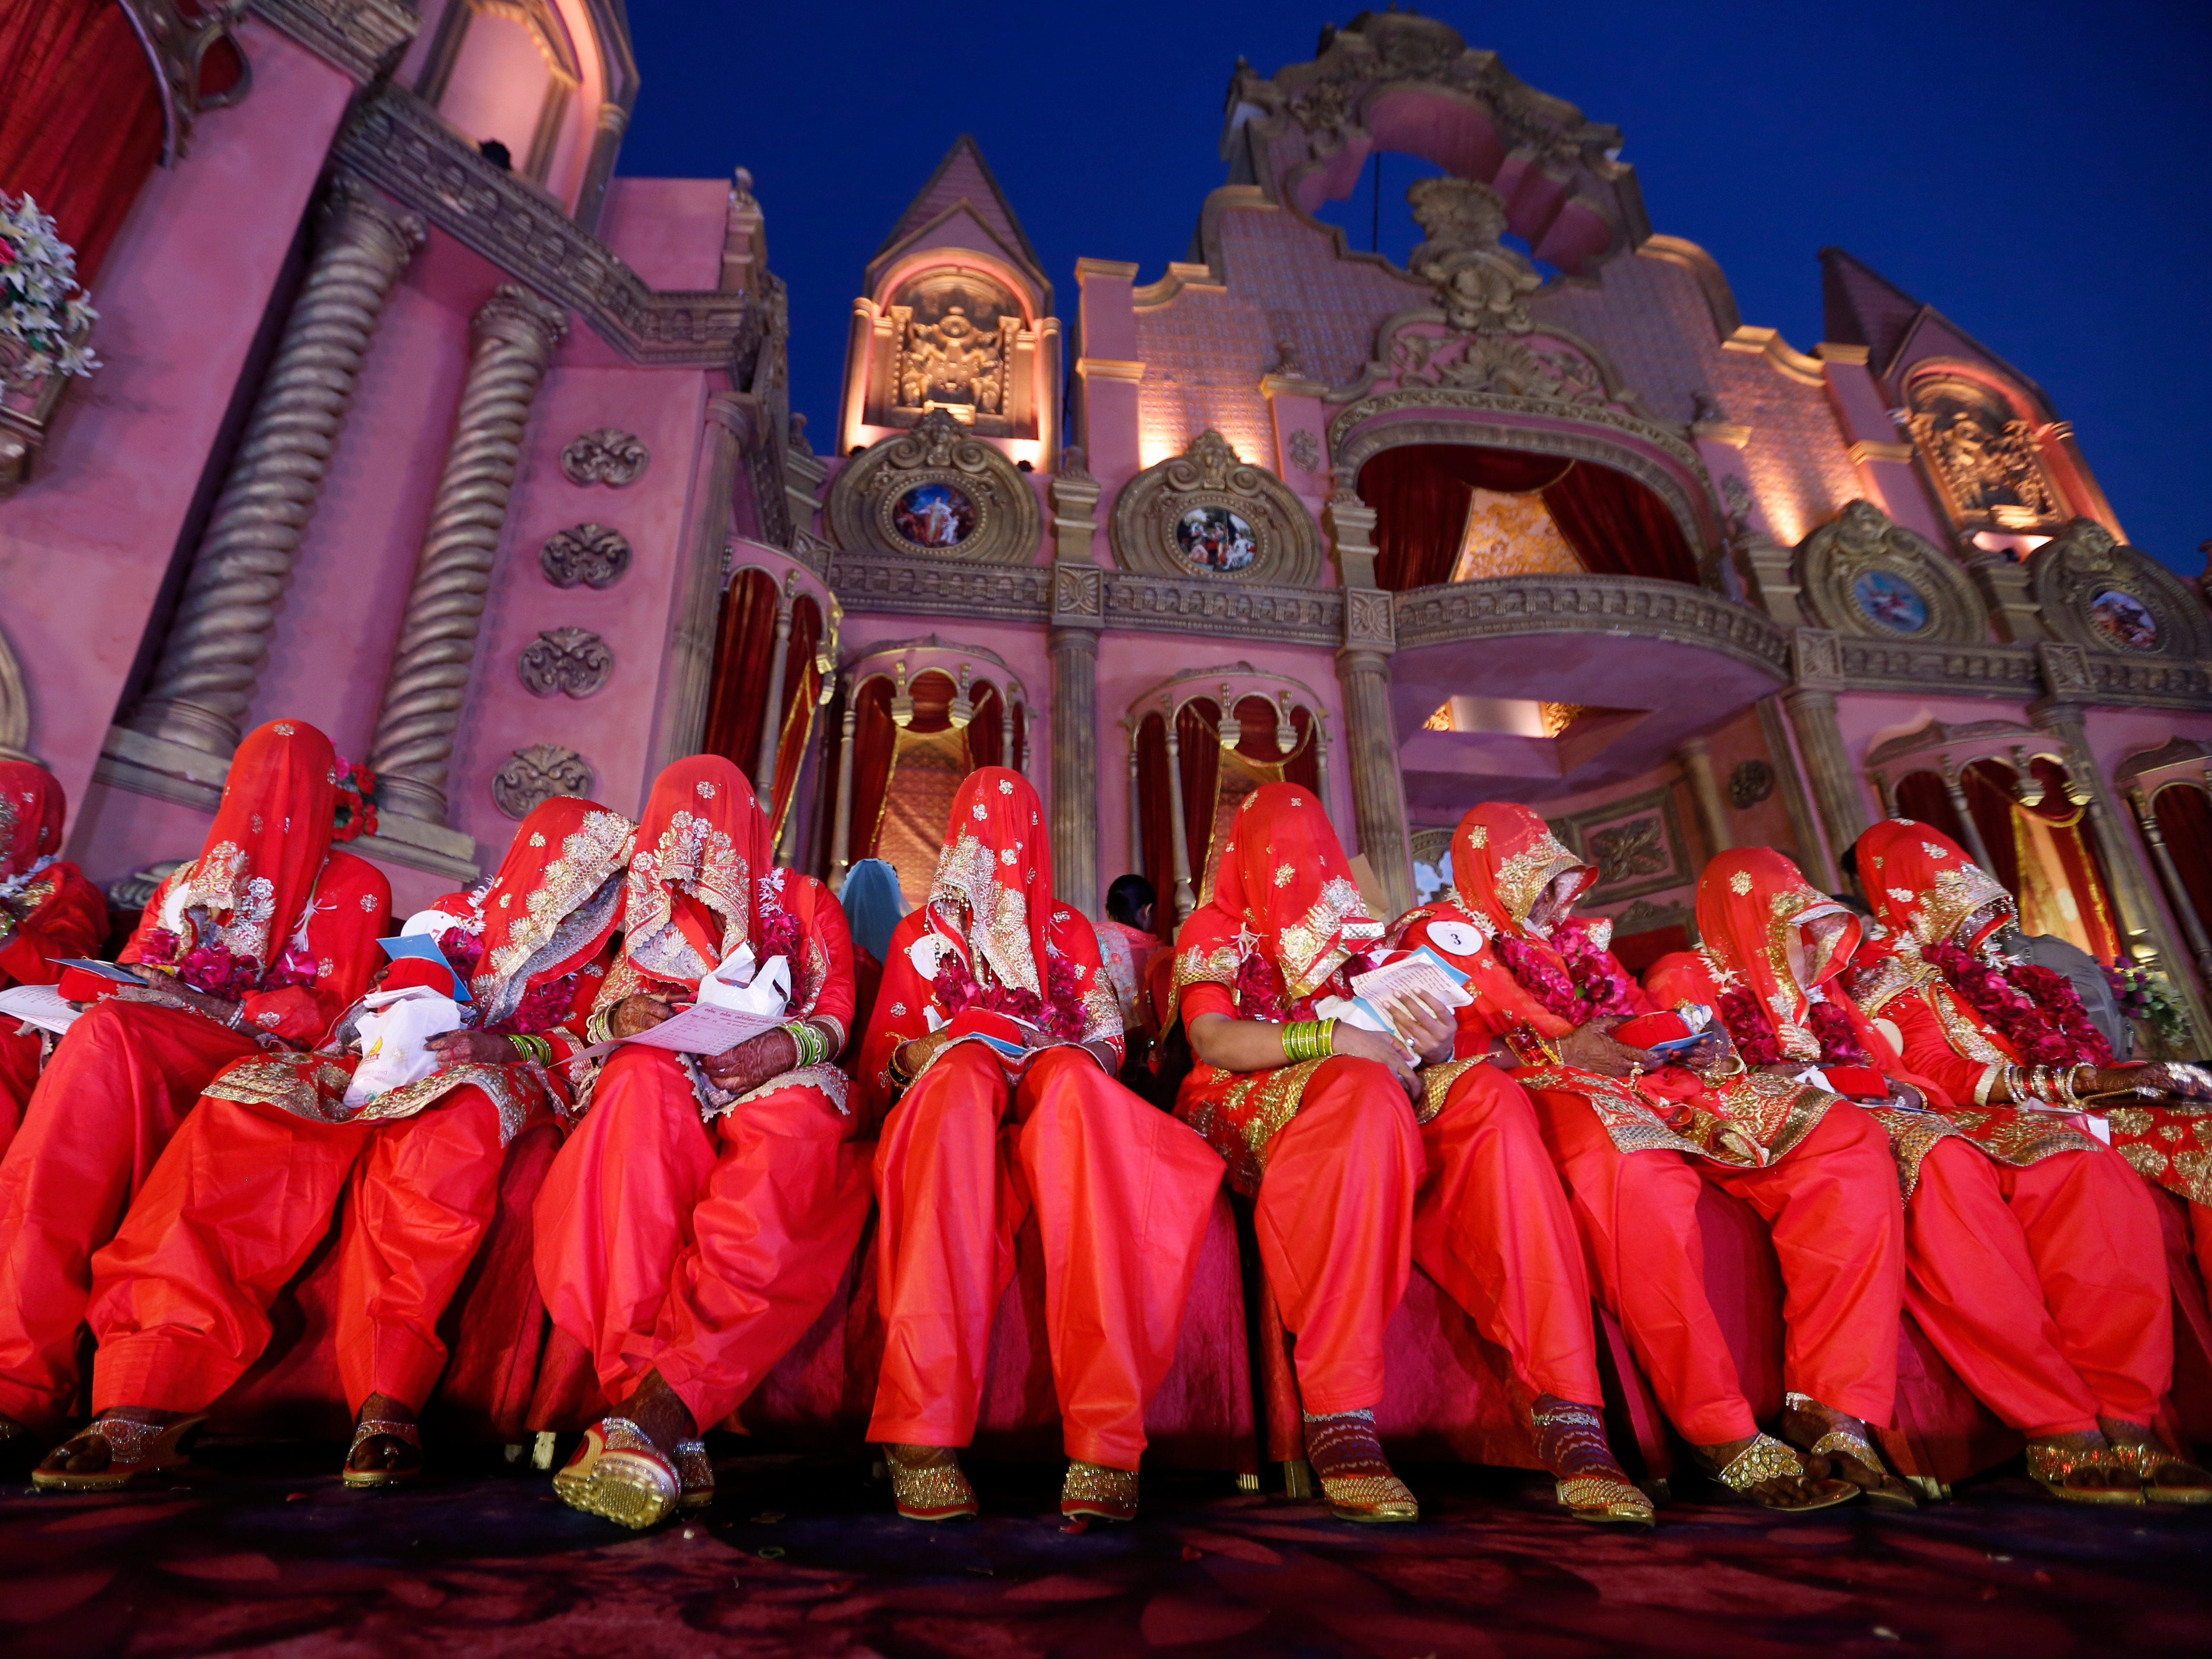 Muslim brides sit during a mass wedding where 65 couples were married in Ahmadabad, India, Monday, Dec. 3, 2018. Mass weddings in India are organized by social organizations primarily to help families who cannot afford the high ceremony costs as well as the customary dowry and expensive gifts that are still prevalent in many communities.